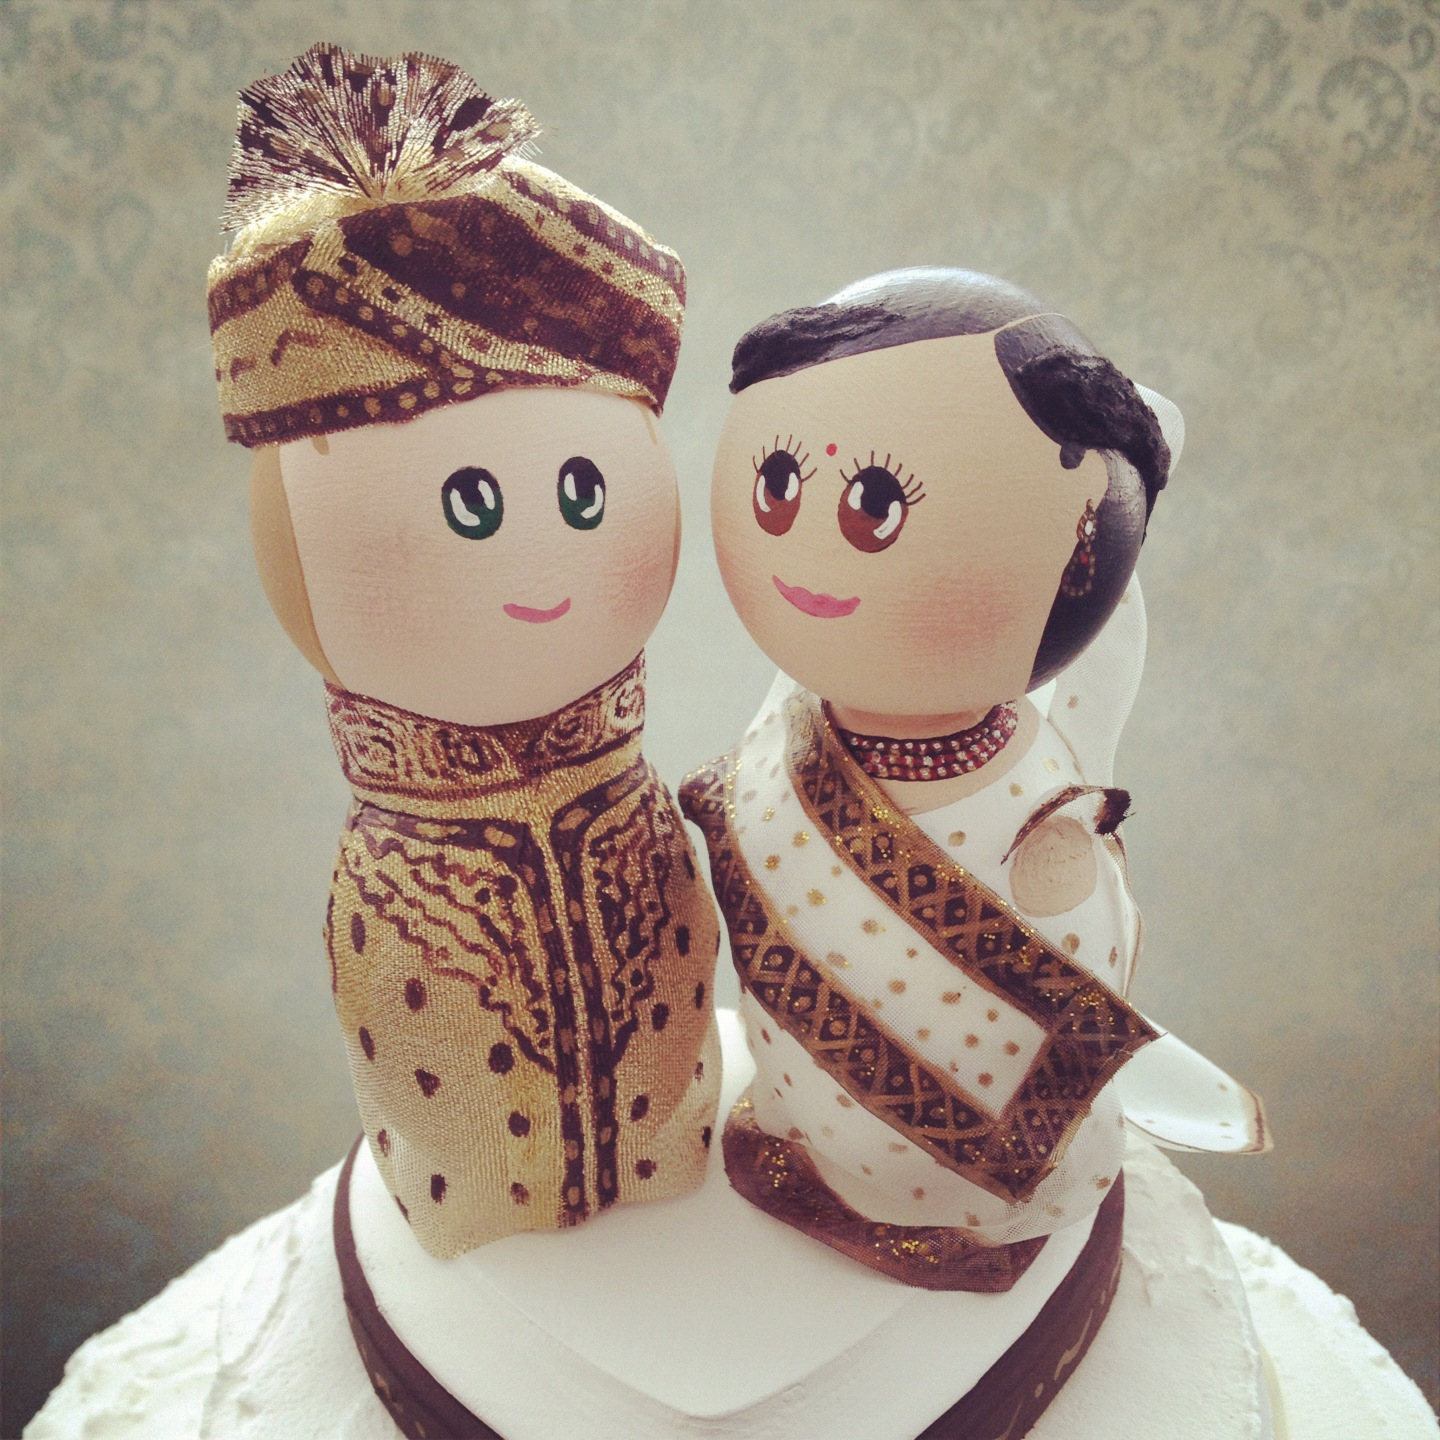 Wedding Gifts For Indian Bride And Groom : DSMeeBee: Custom Indian Bride and Groom